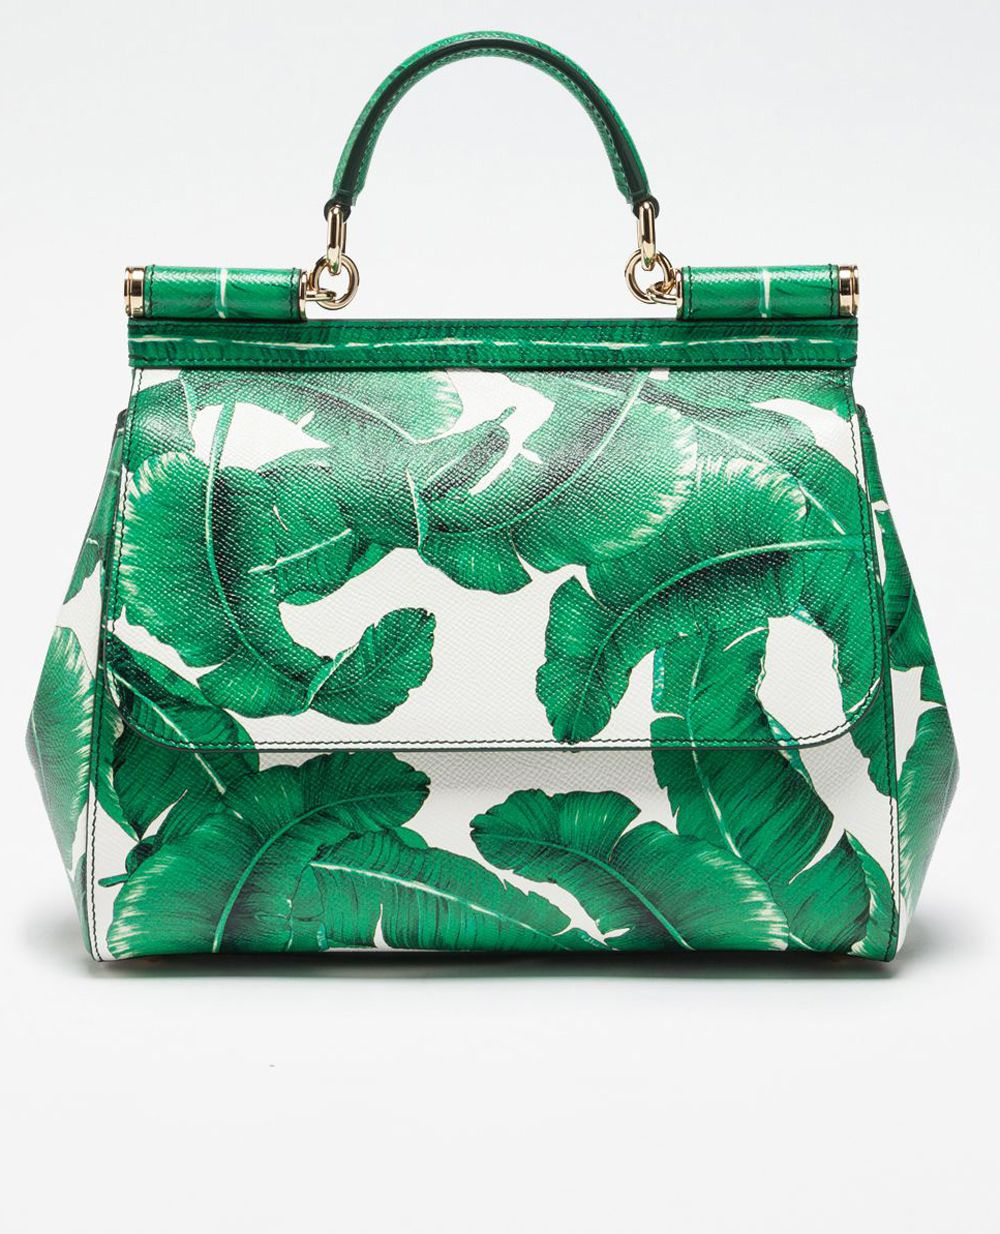 7cddc7bbed71 Dolce-Gabbana-Banana-Leaf-Accessories-Bags-Shoes-Tom-Lorenzo-Site (1 ...